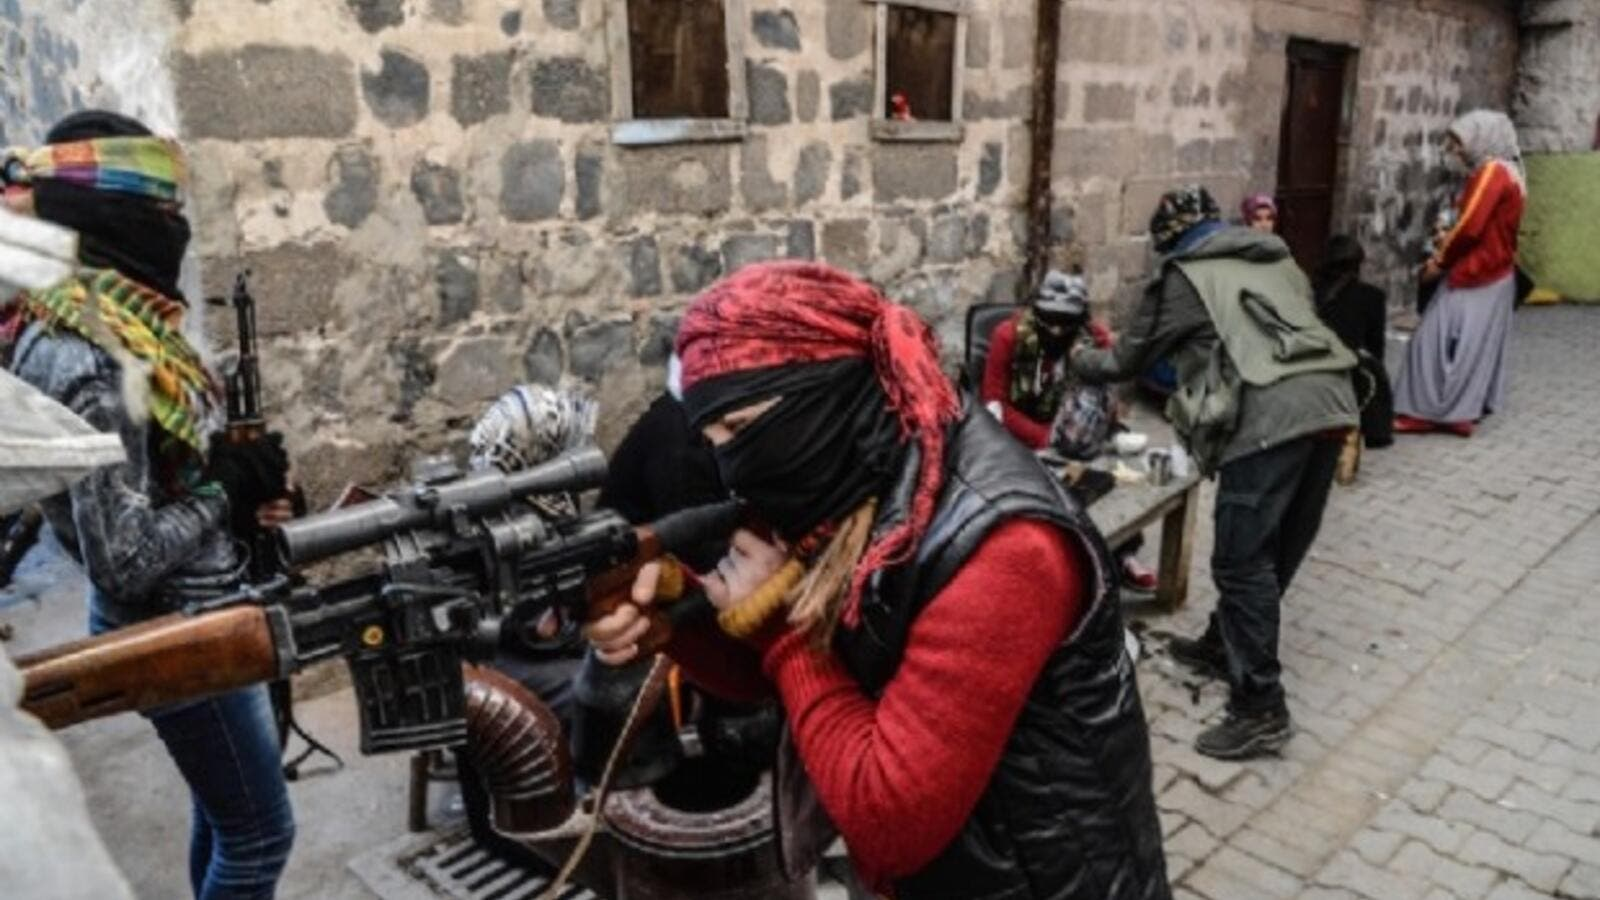 Kurdistan Workers Party (PKK) militants in Diyarbakir, Turkey. (AFP/File)